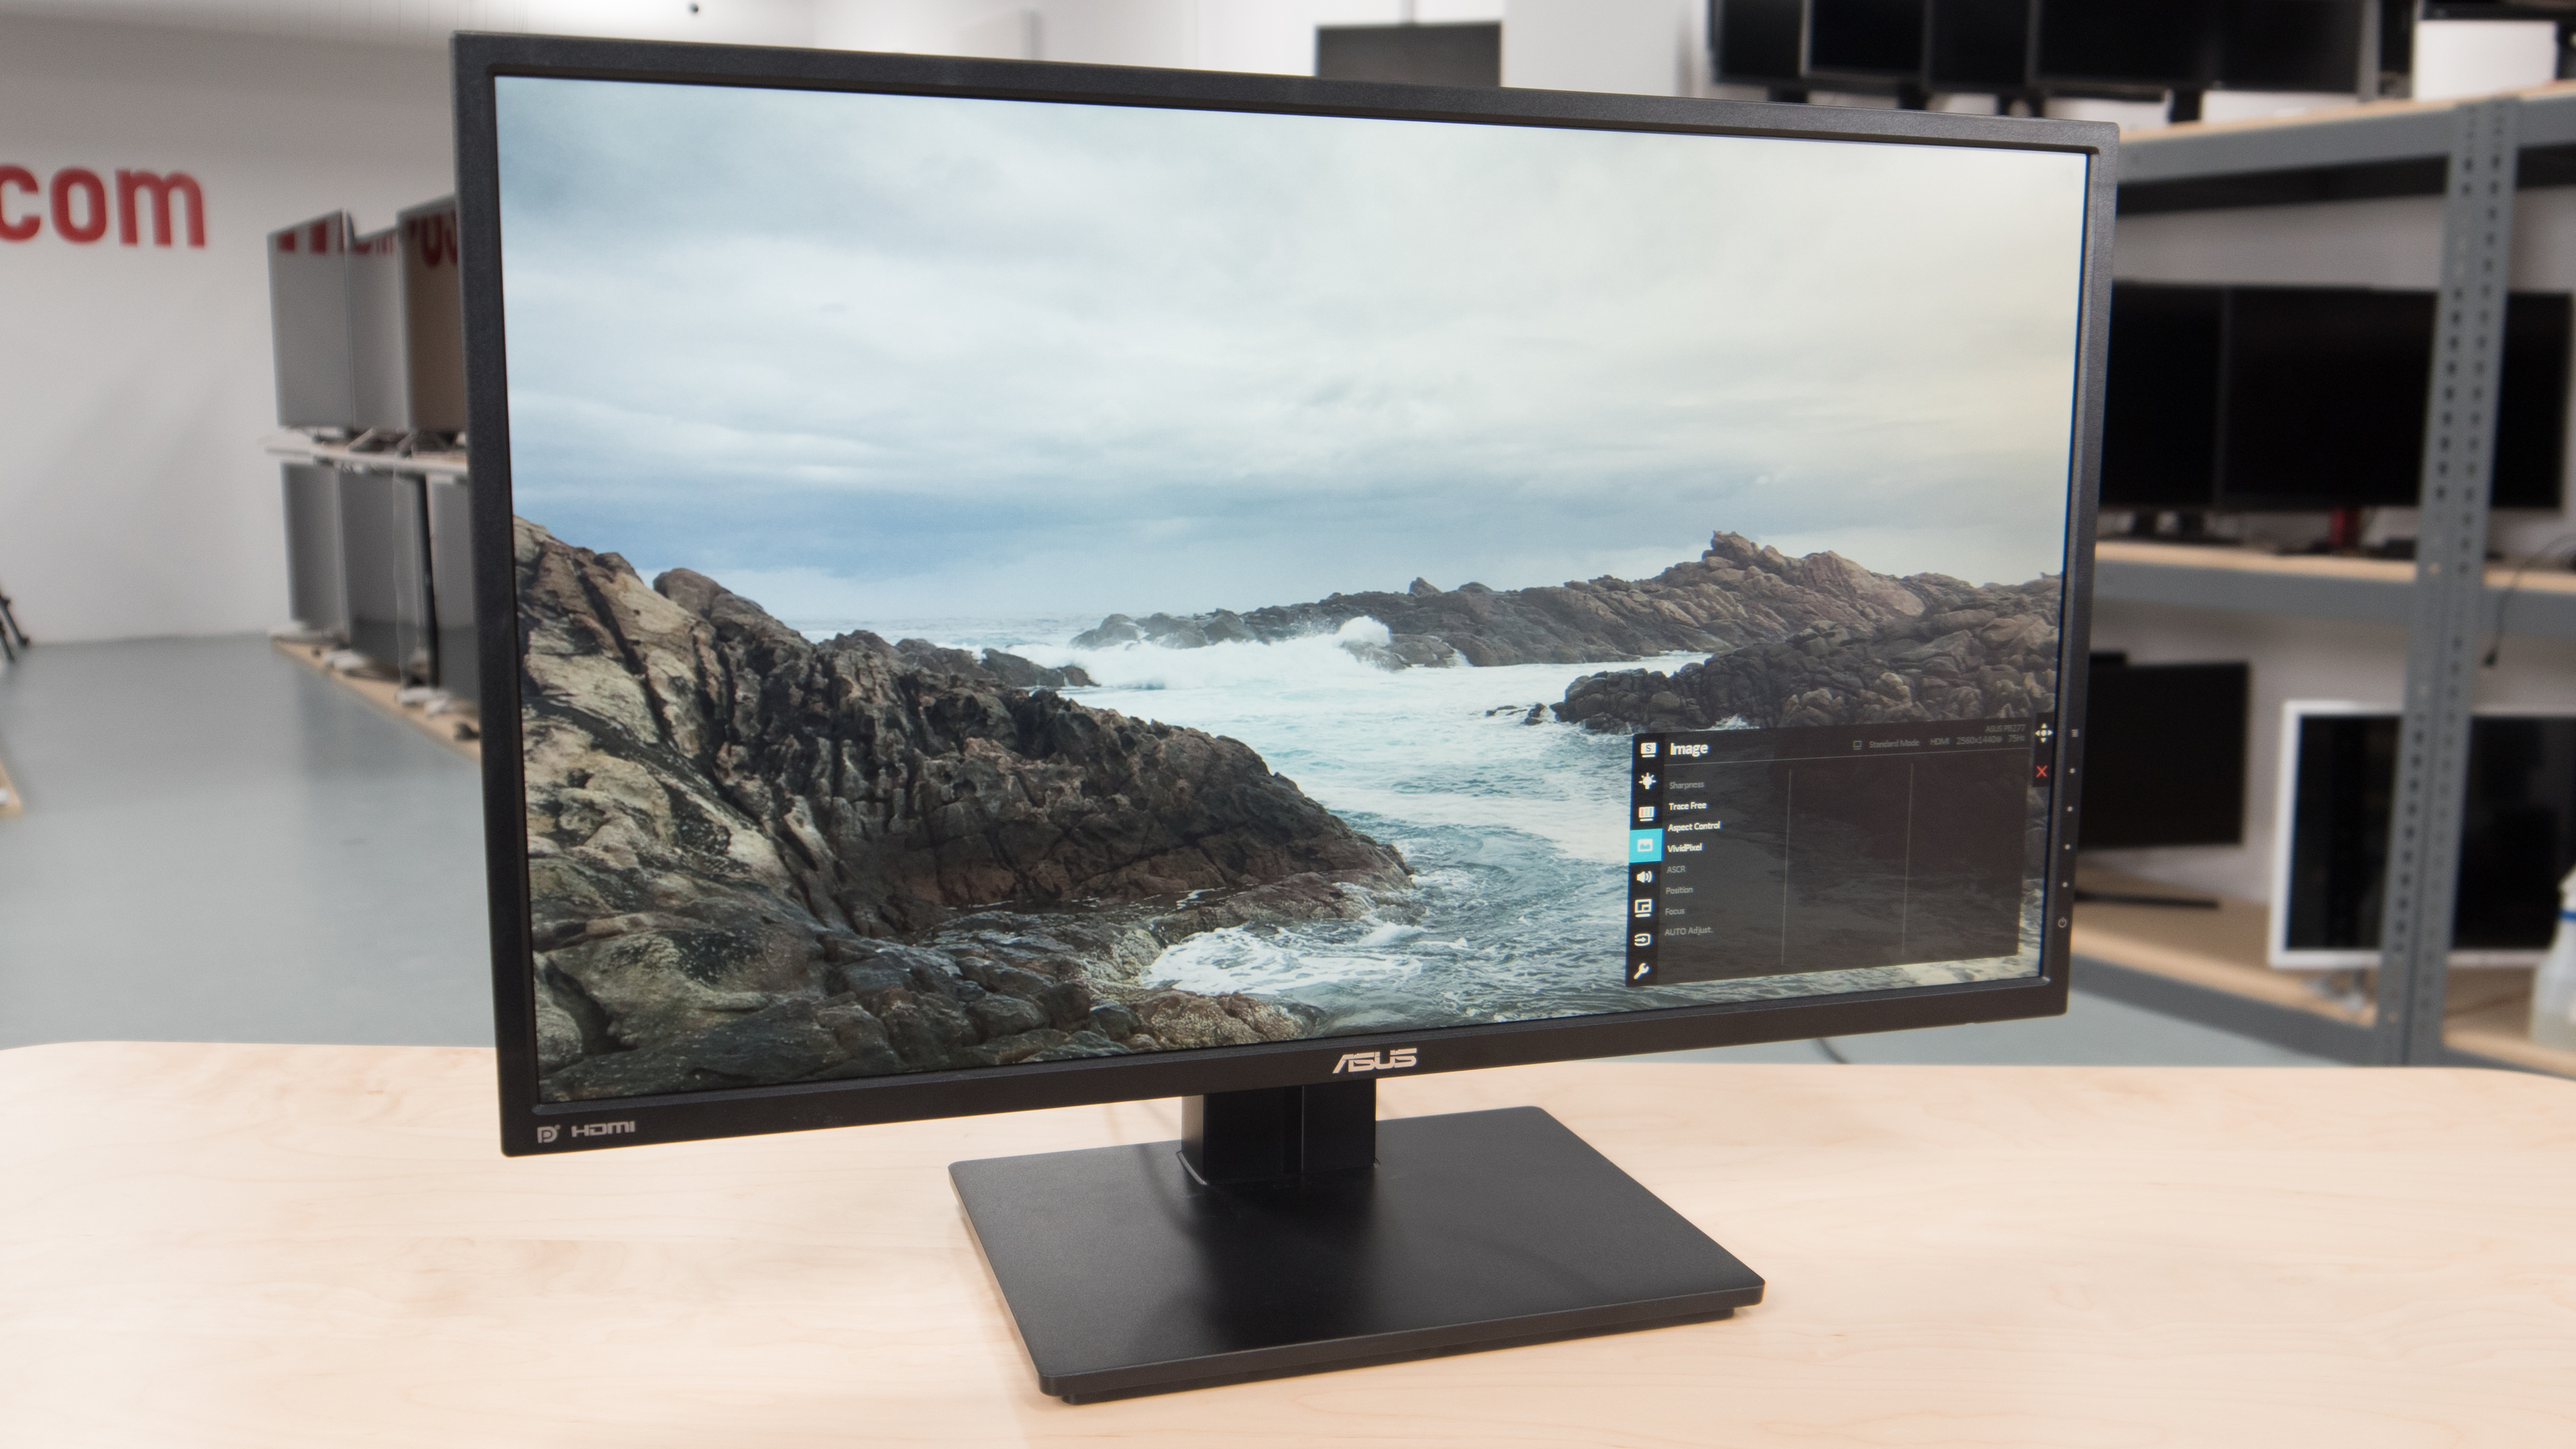 https://i.rtings.com/images/reviews/monitor/asus/pb277q/pb277q-design-large.jpg